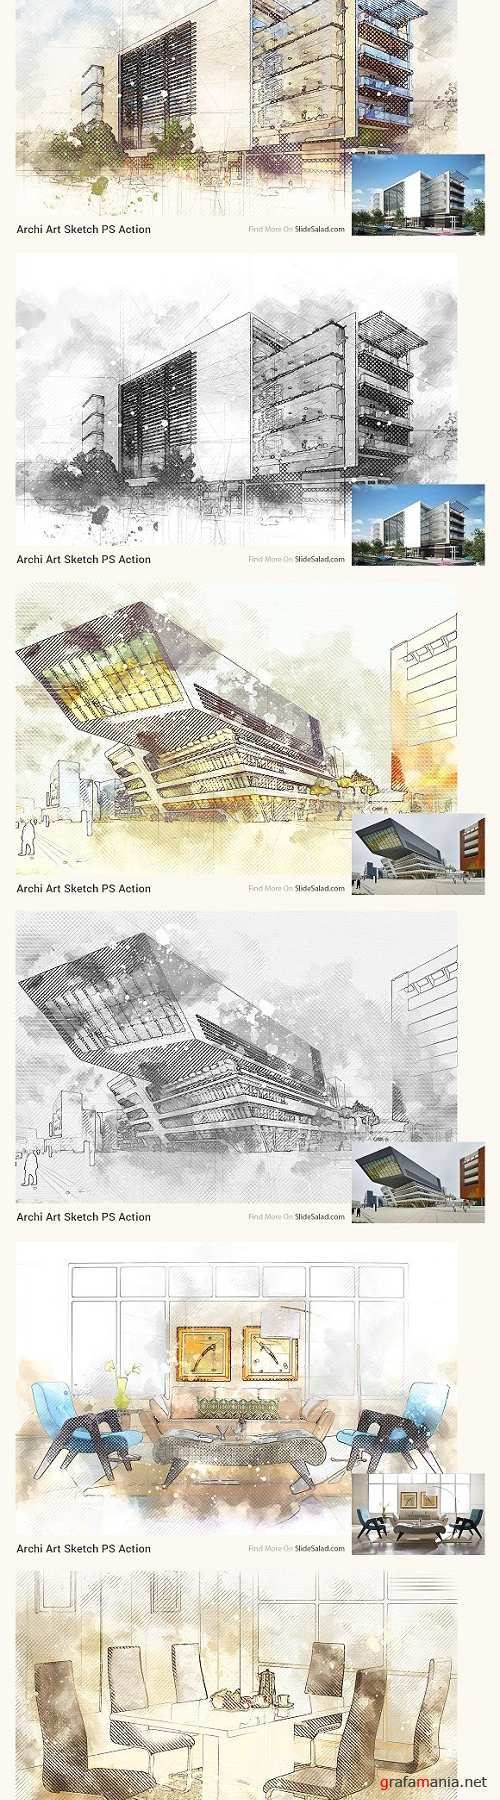 Archi Art Sketch Photoshop Action V2 2135673